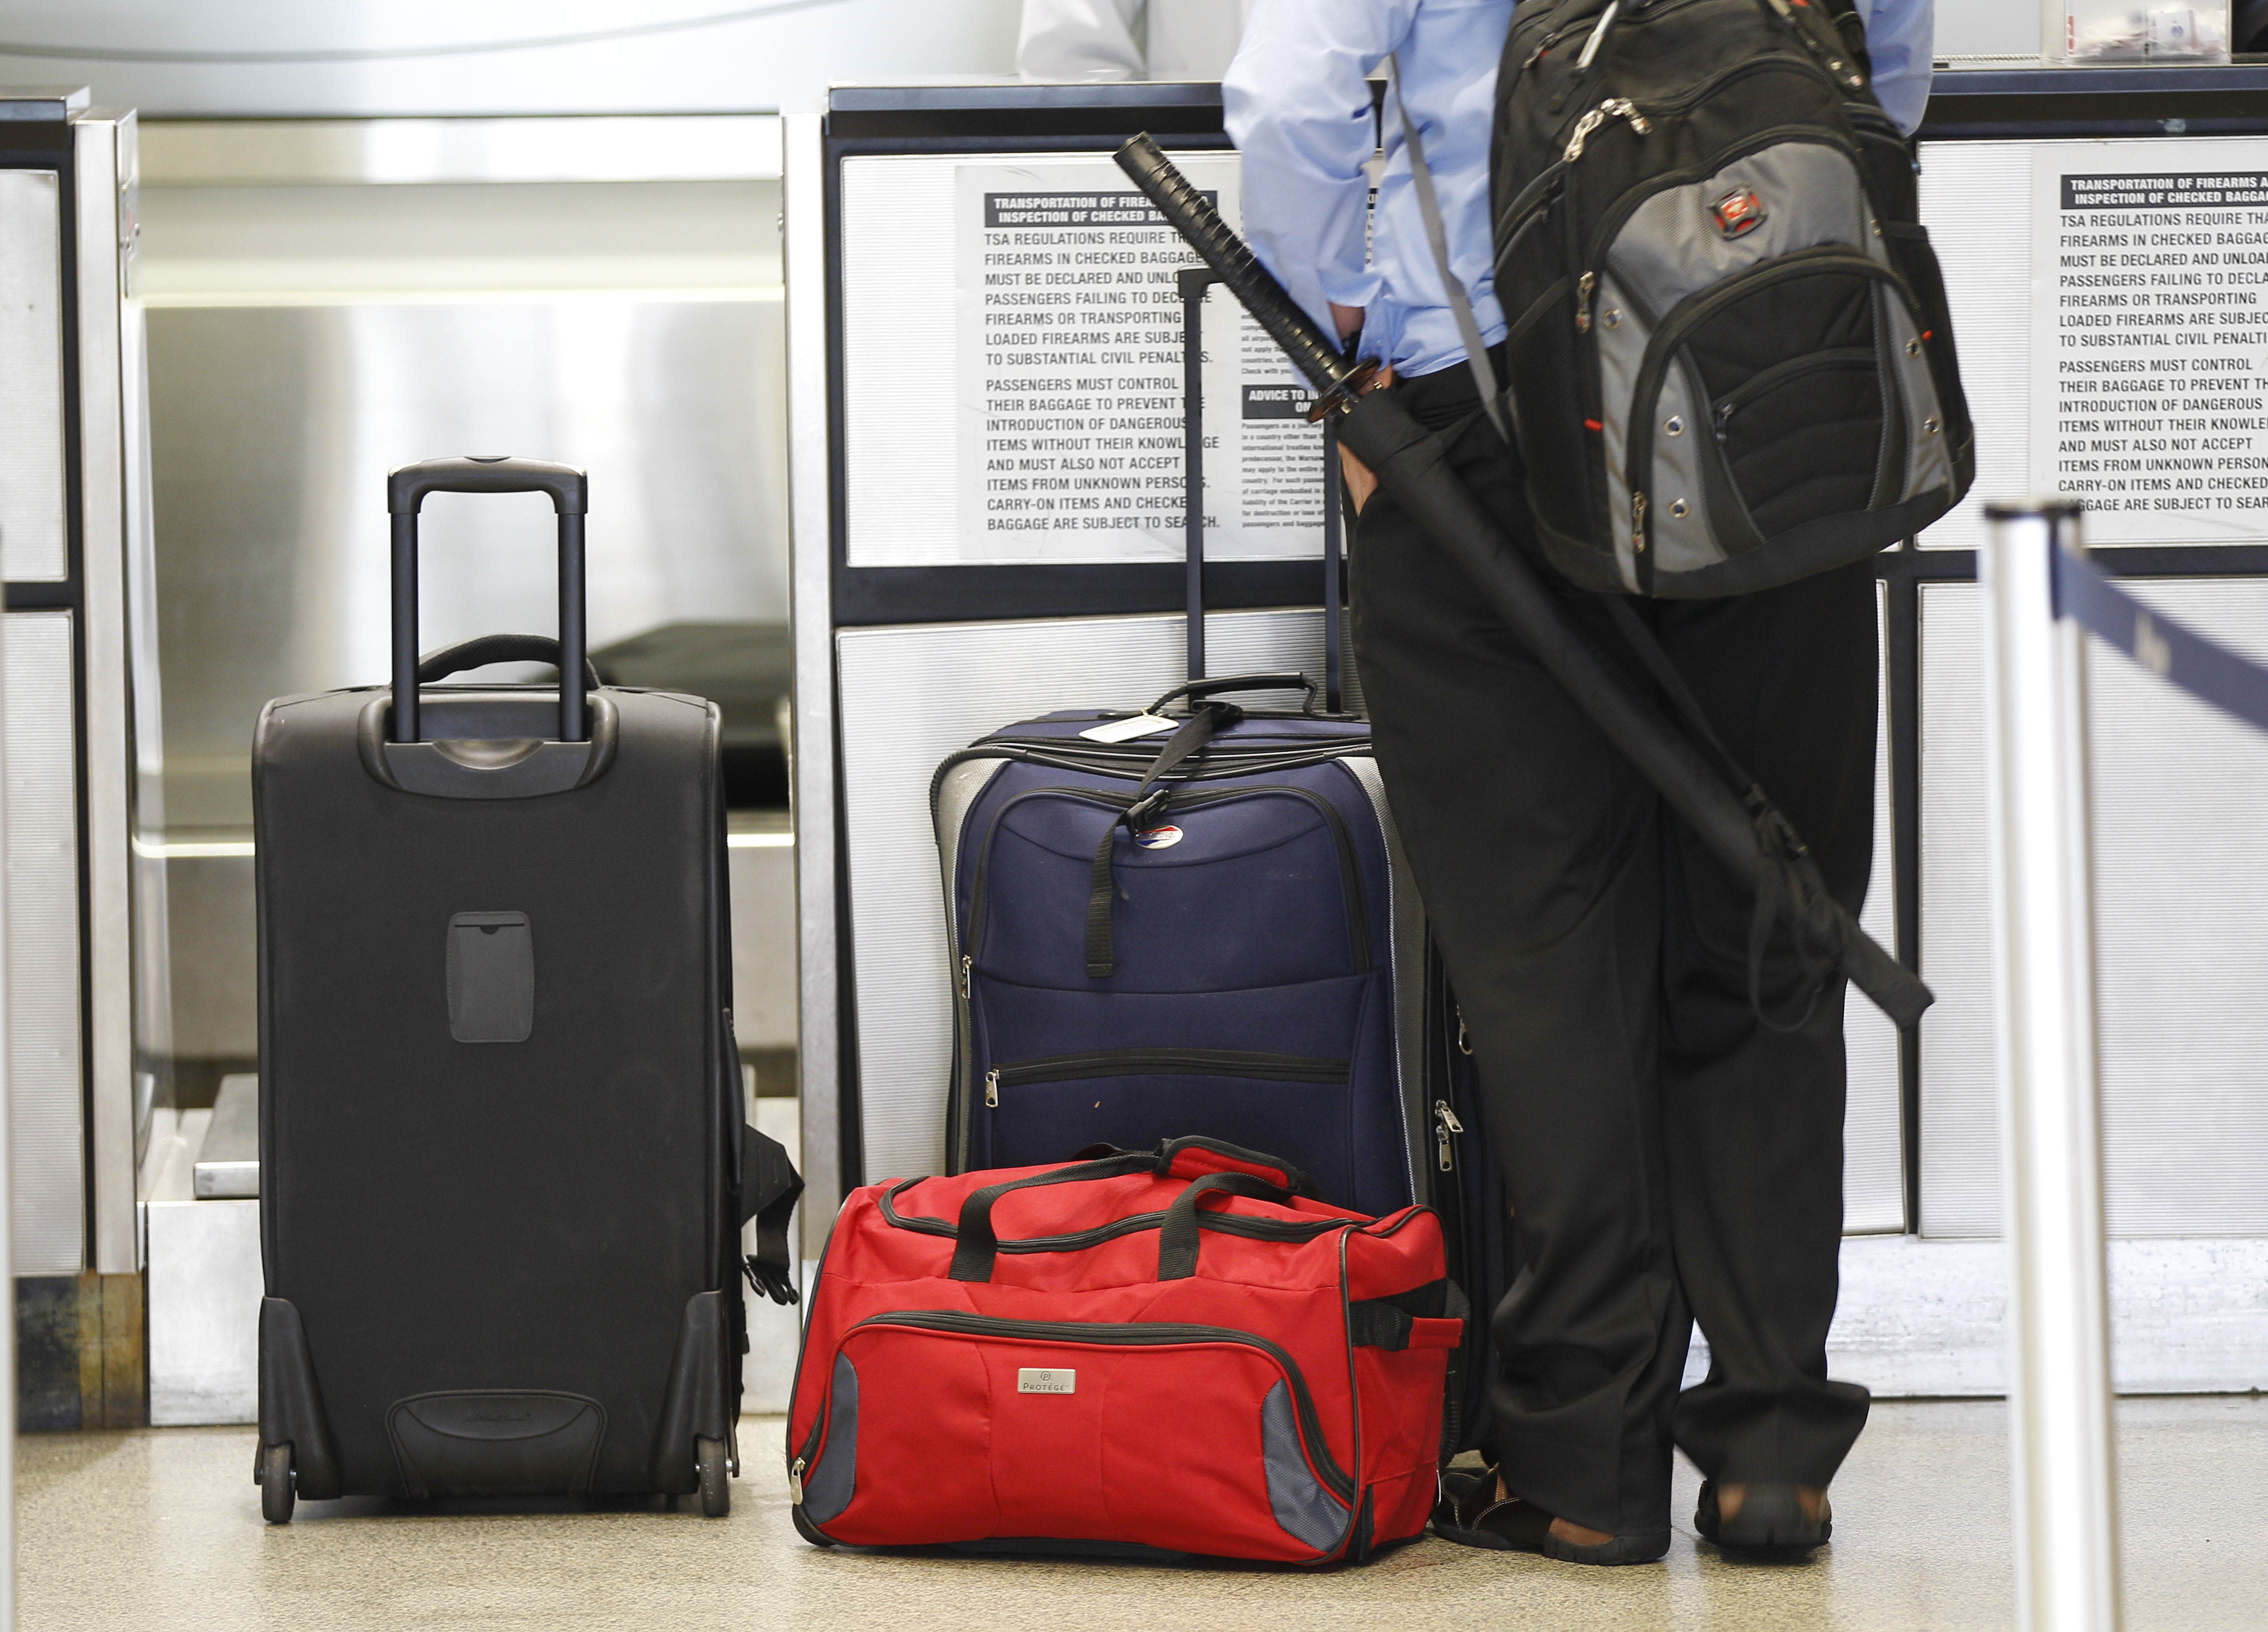 4 ways to avoid paying baggage fees